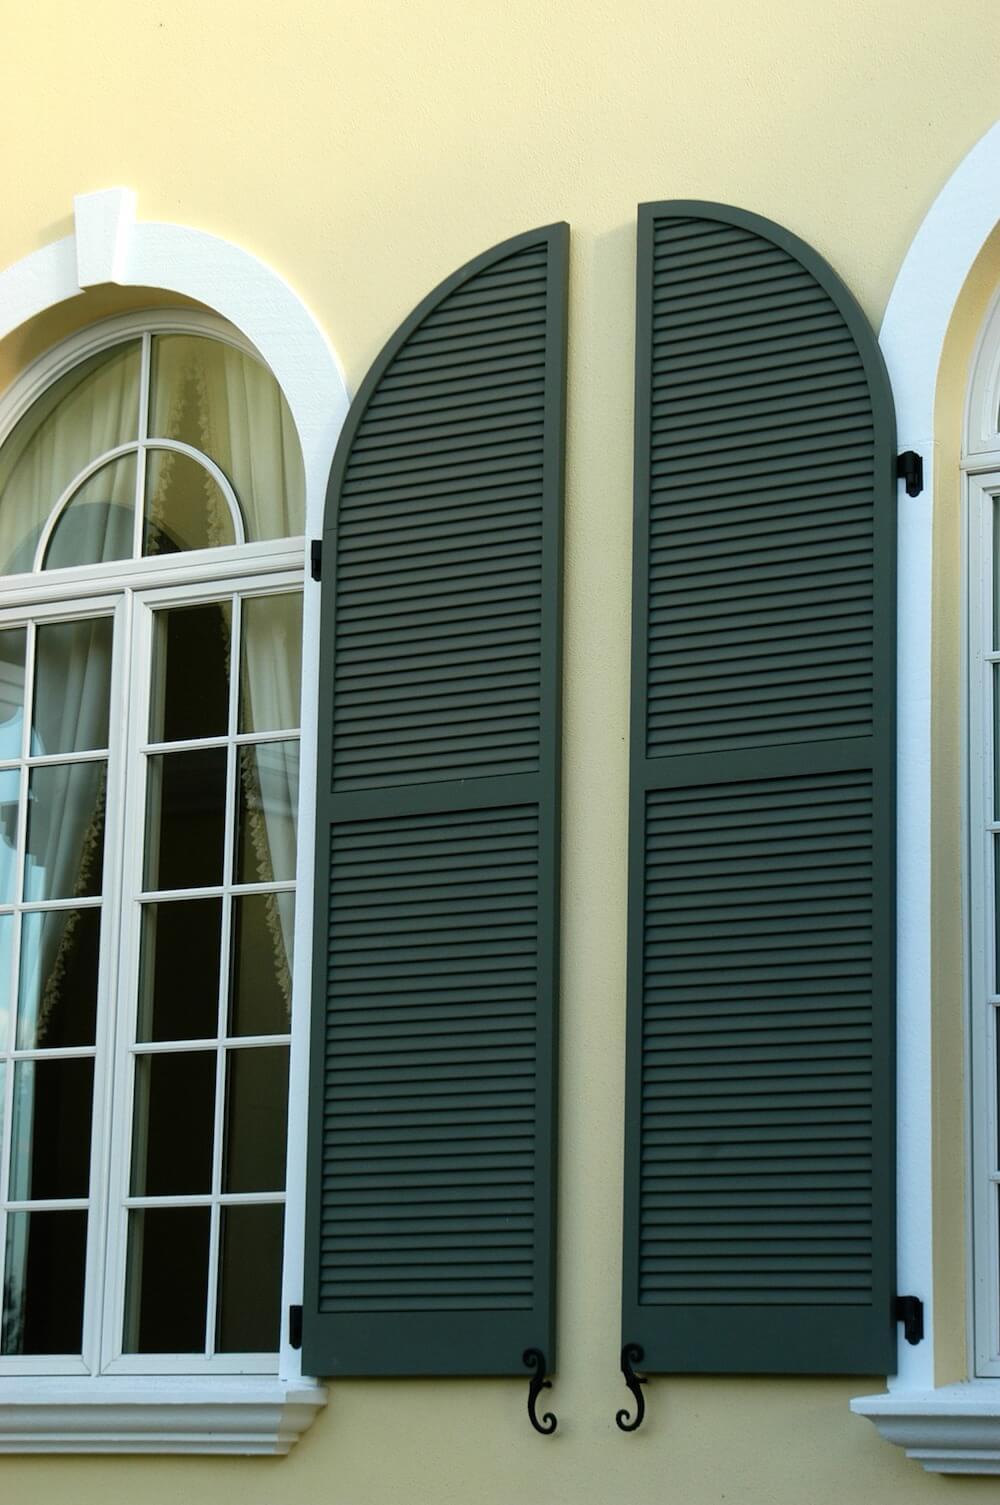 Window Shutter Installation Price & 2017 Home Doors \u0026 Windows Prices | Bay Windows Sliding Doors ... Pezcame.Com